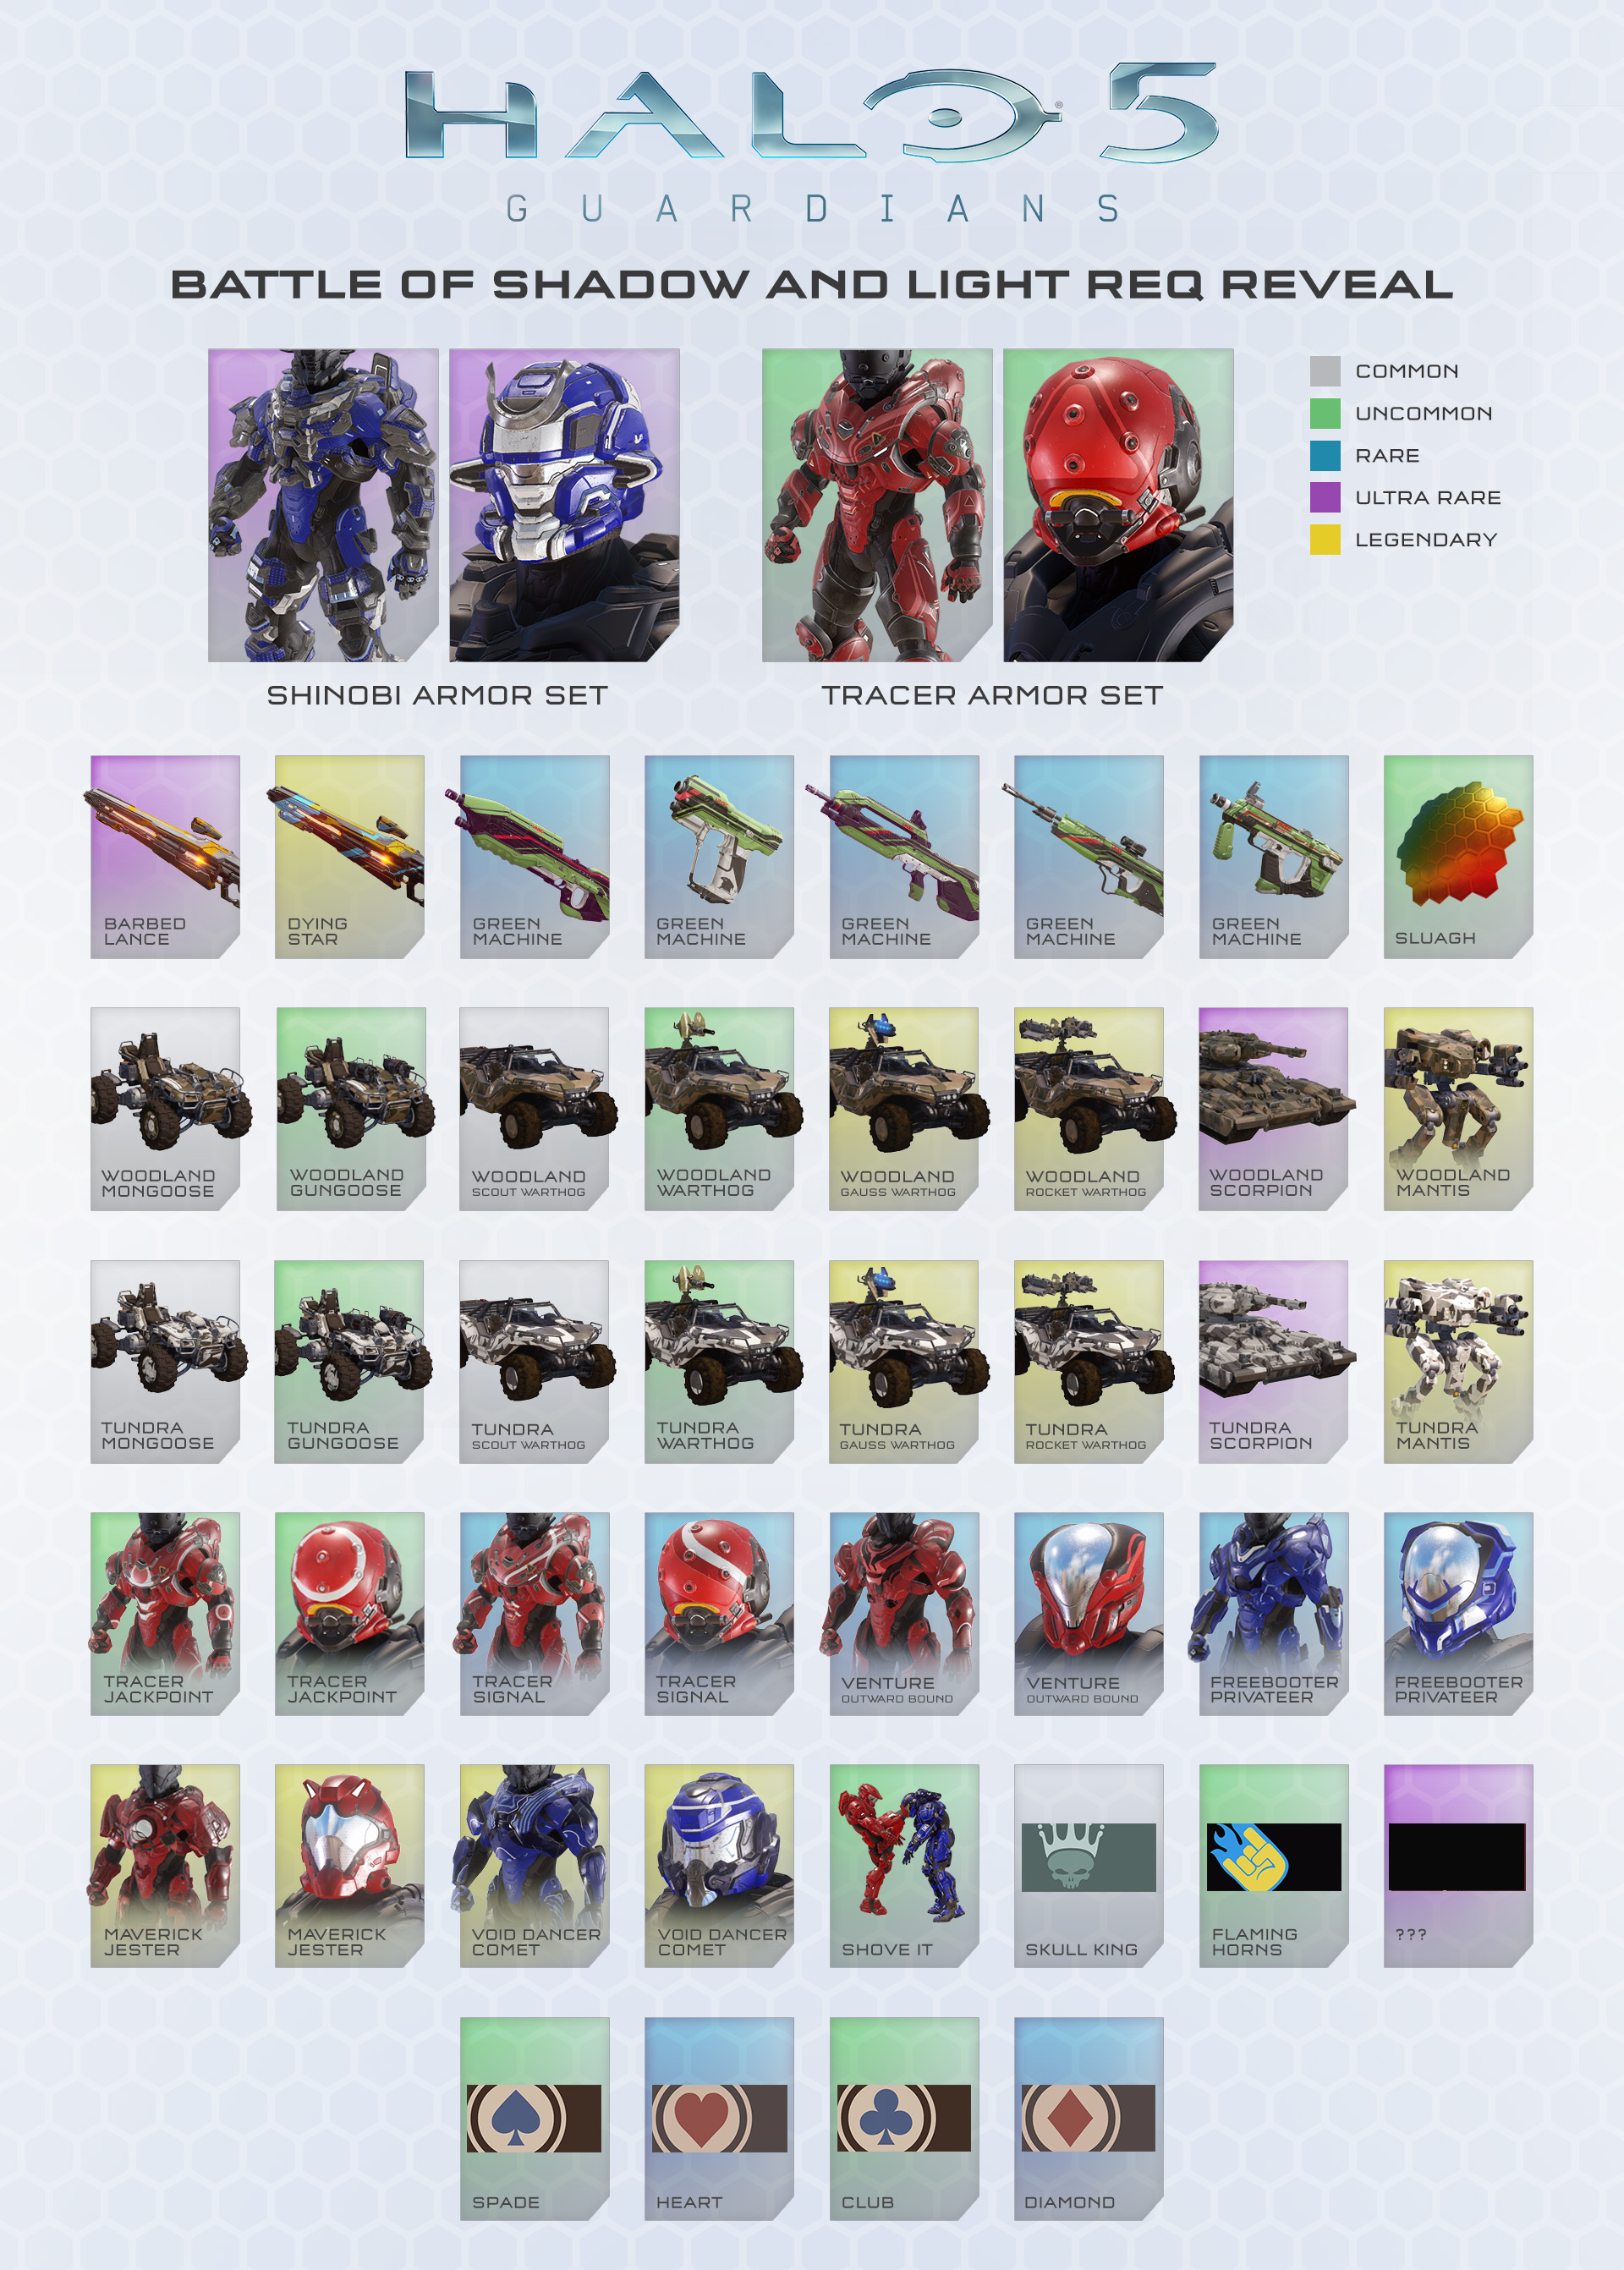 halo_5_guardians_november_update_battlef_of_shadow_and_light_req_items_list